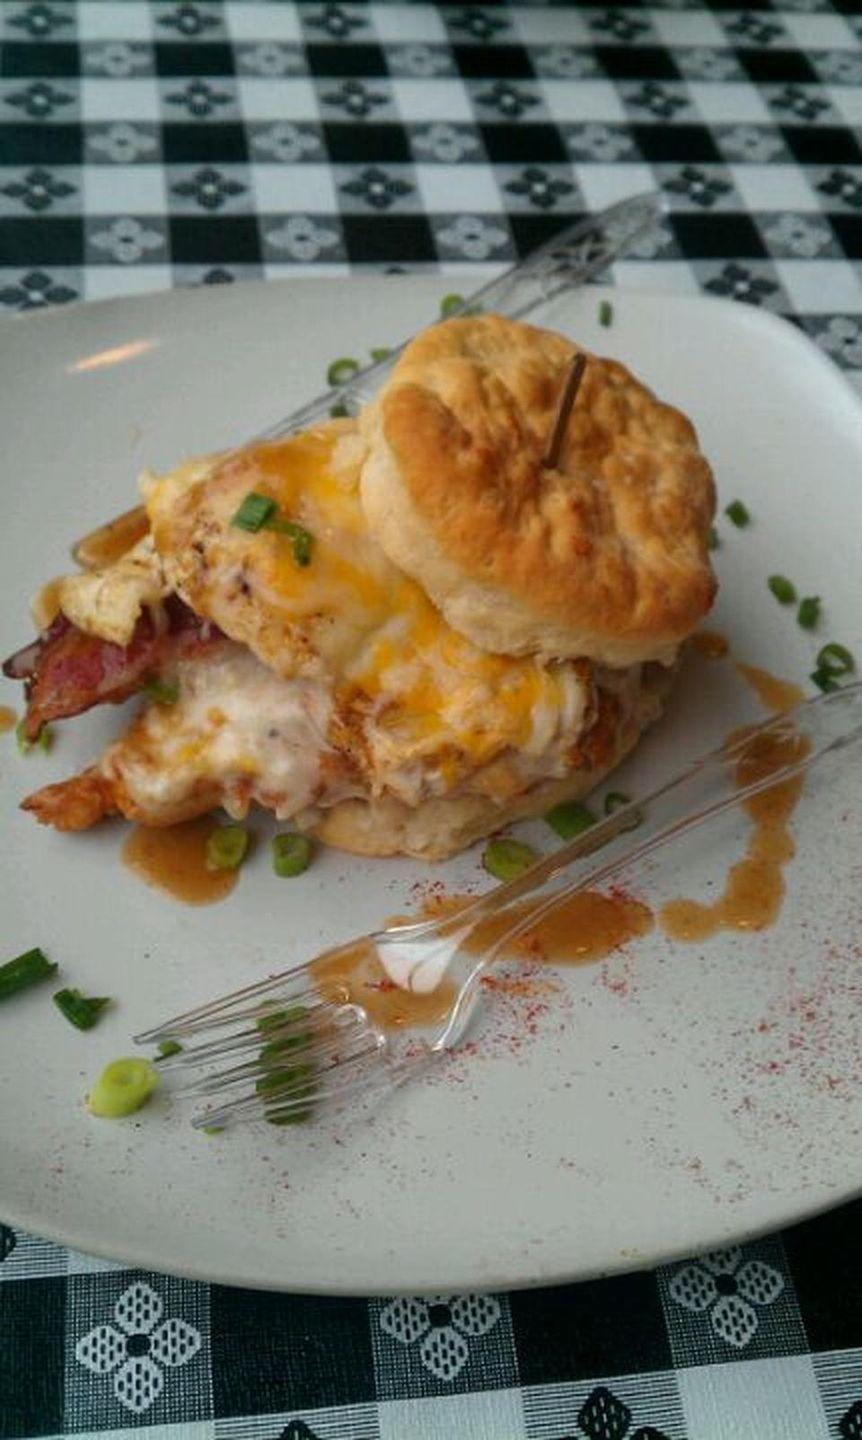 """<p><a href=""""https://www.tripadvisor.com/Restaurant_Review-g59335-d3200806-Reviews-The_Dirty_Bird-Morgantown_West_Virginia.html"""" rel=""""nofollow noopener"""" target=""""_blank"""" data-ylk=""""slk:Dirty Bird"""" class=""""link rapid-noclick-resp"""">Dirty Bird</a>, Morgantown</p><p>Best chicken in town ... I recommend the dirty bird sandwich!!!<span class=""""redactor-invisible-space""""> - Foursquare user <a href=""""https://foursquare.com/user/14077842"""" rel=""""nofollow noopener"""" target=""""_blank"""" data-ylk=""""slk:Kevin Wanders"""" class=""""link rapid-noclick-resp"""">Kevin Wanders</a></span><br></p>"""